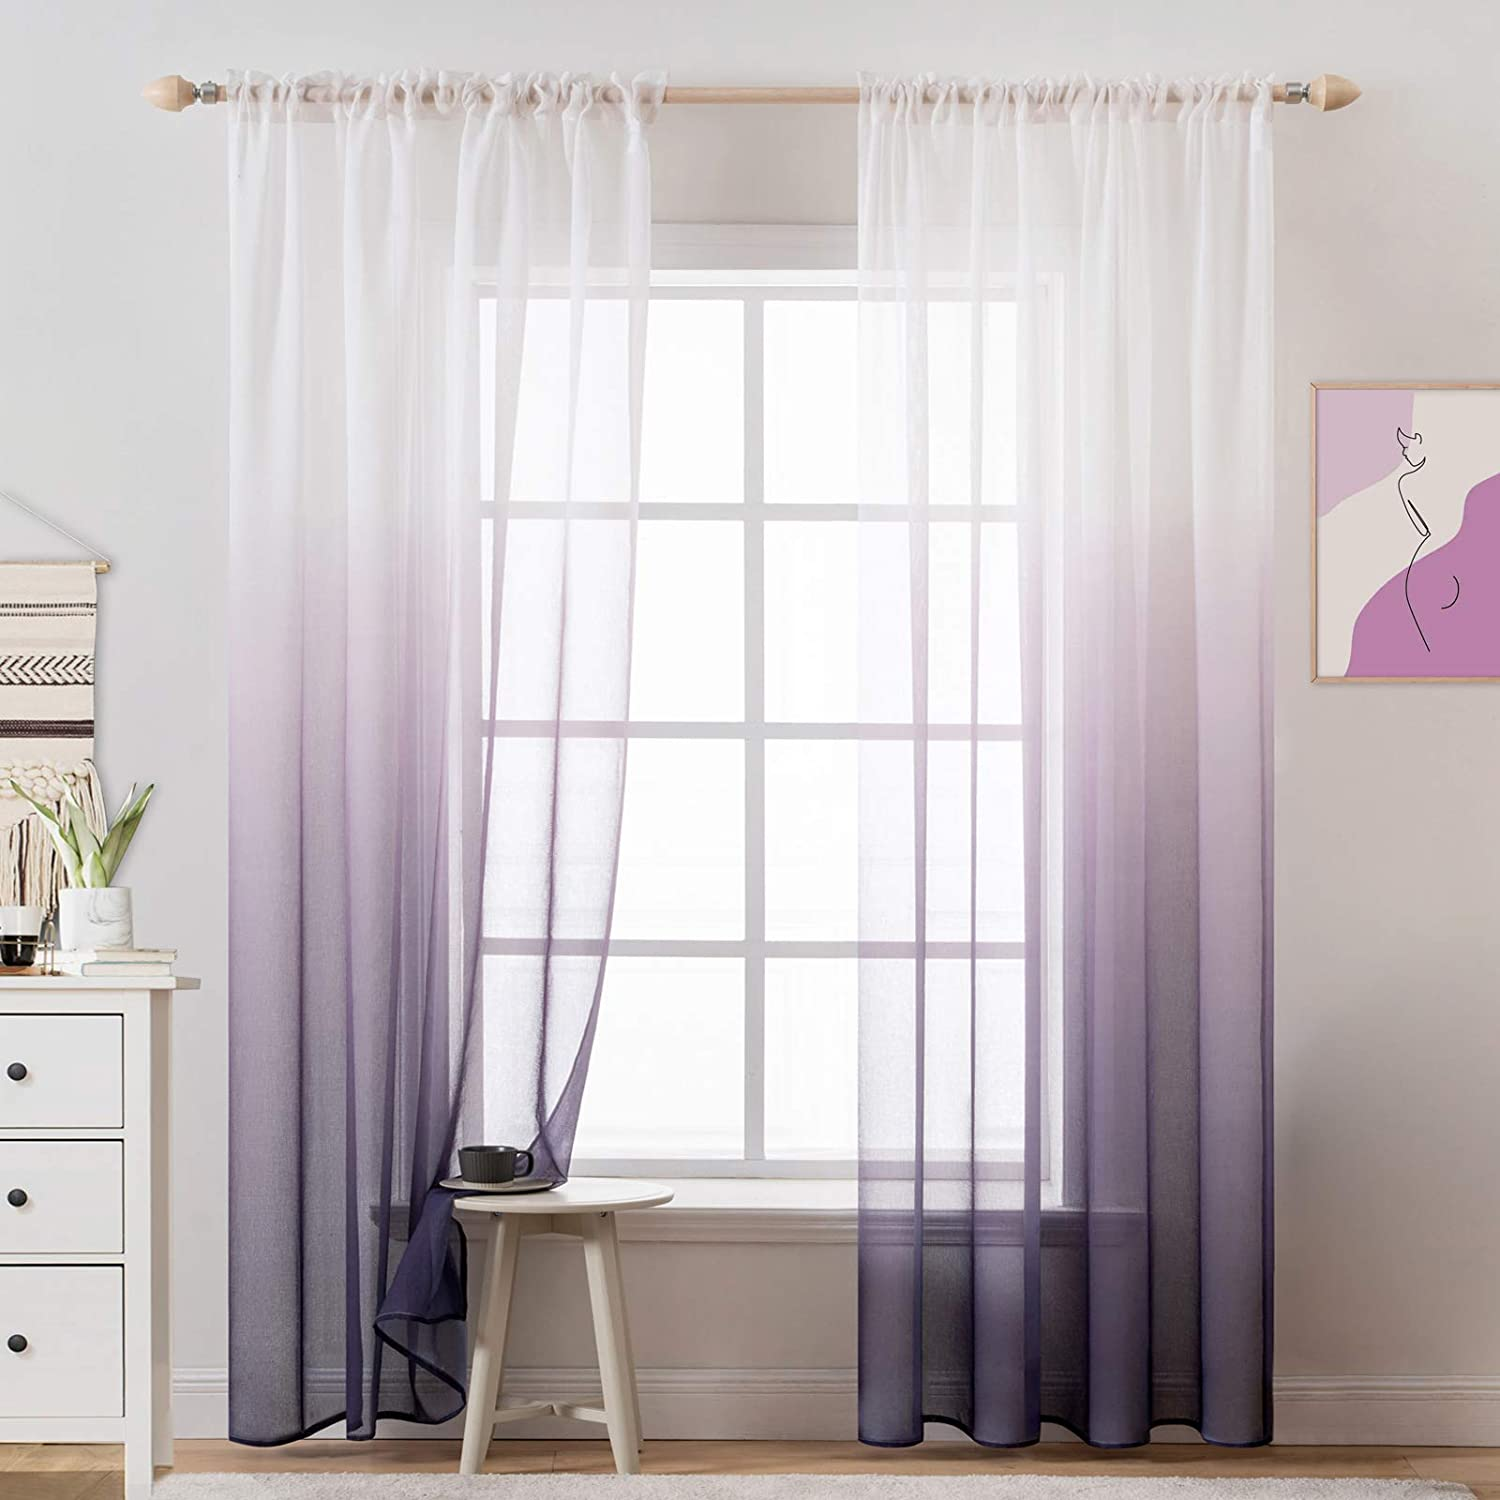 MIULEE Ombre Sheer Curtains Semi V Max 80% favorite OFF Transparent Window Treatments